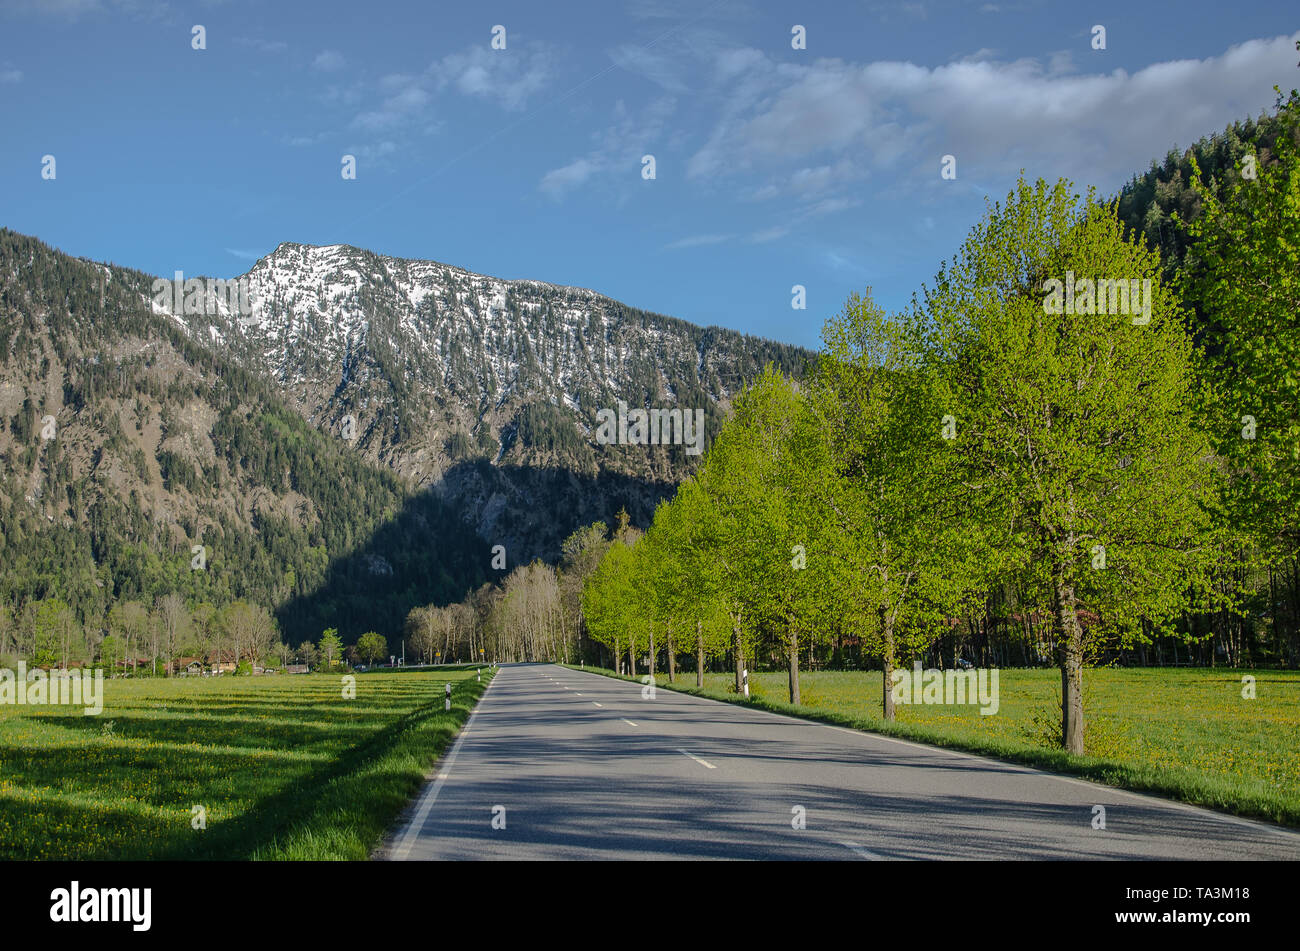 The driveway of Bayrischzell is about 5km long and a good 8% slope to handle well. Partly the road even offers a bike path. - Stock Image